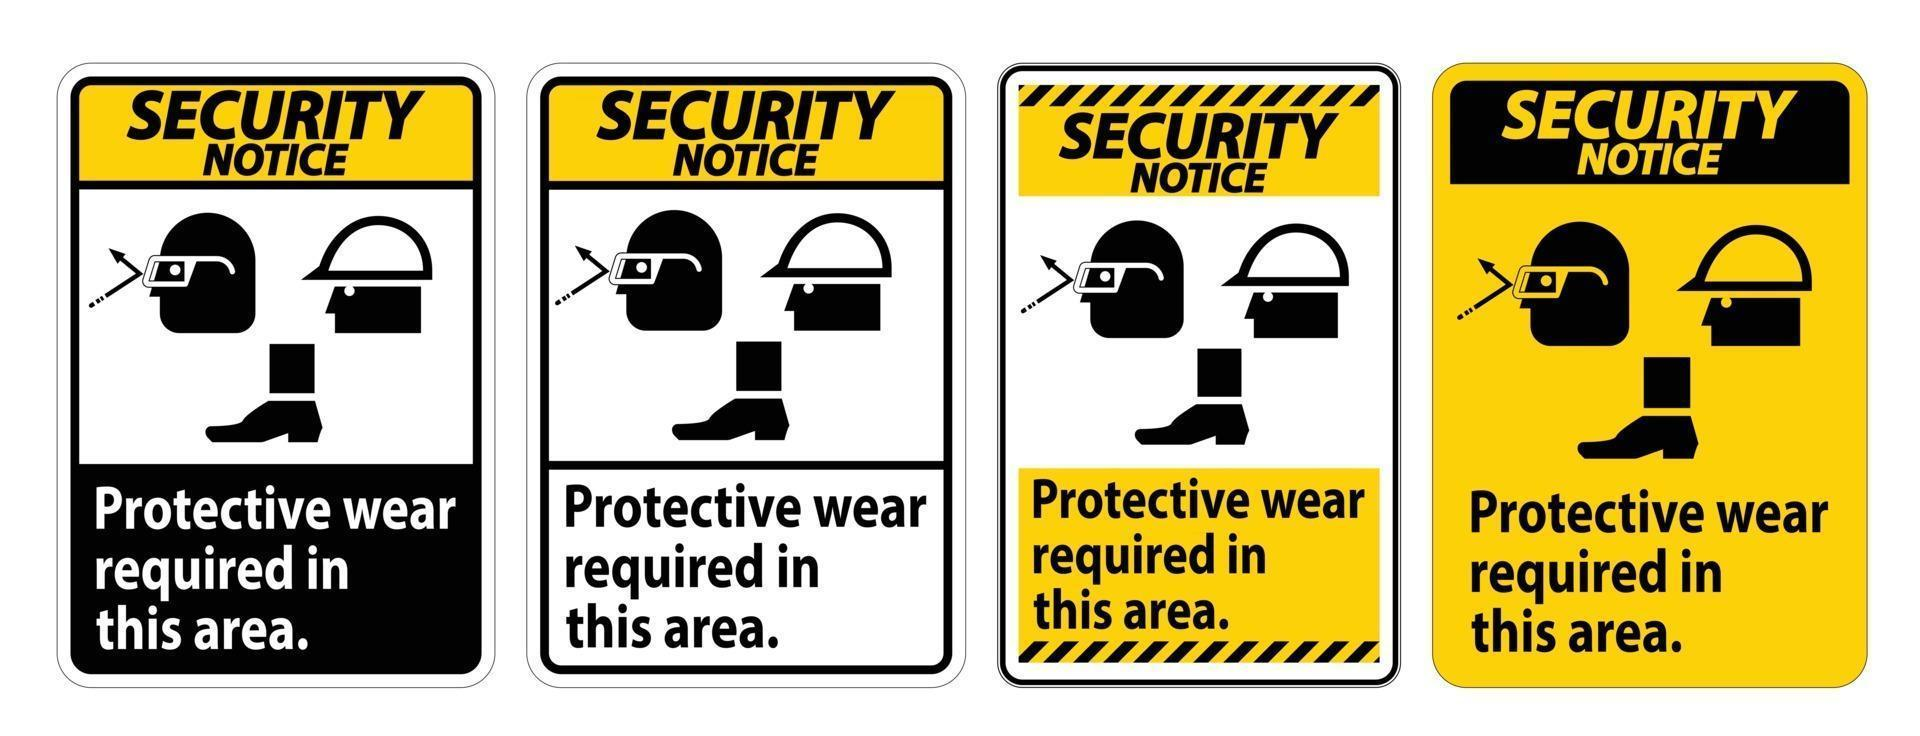 Security Notice Sign Protective Wear Is Required In This Area.With Goggles, Hard Hat, And Boots Symbols on white background vector